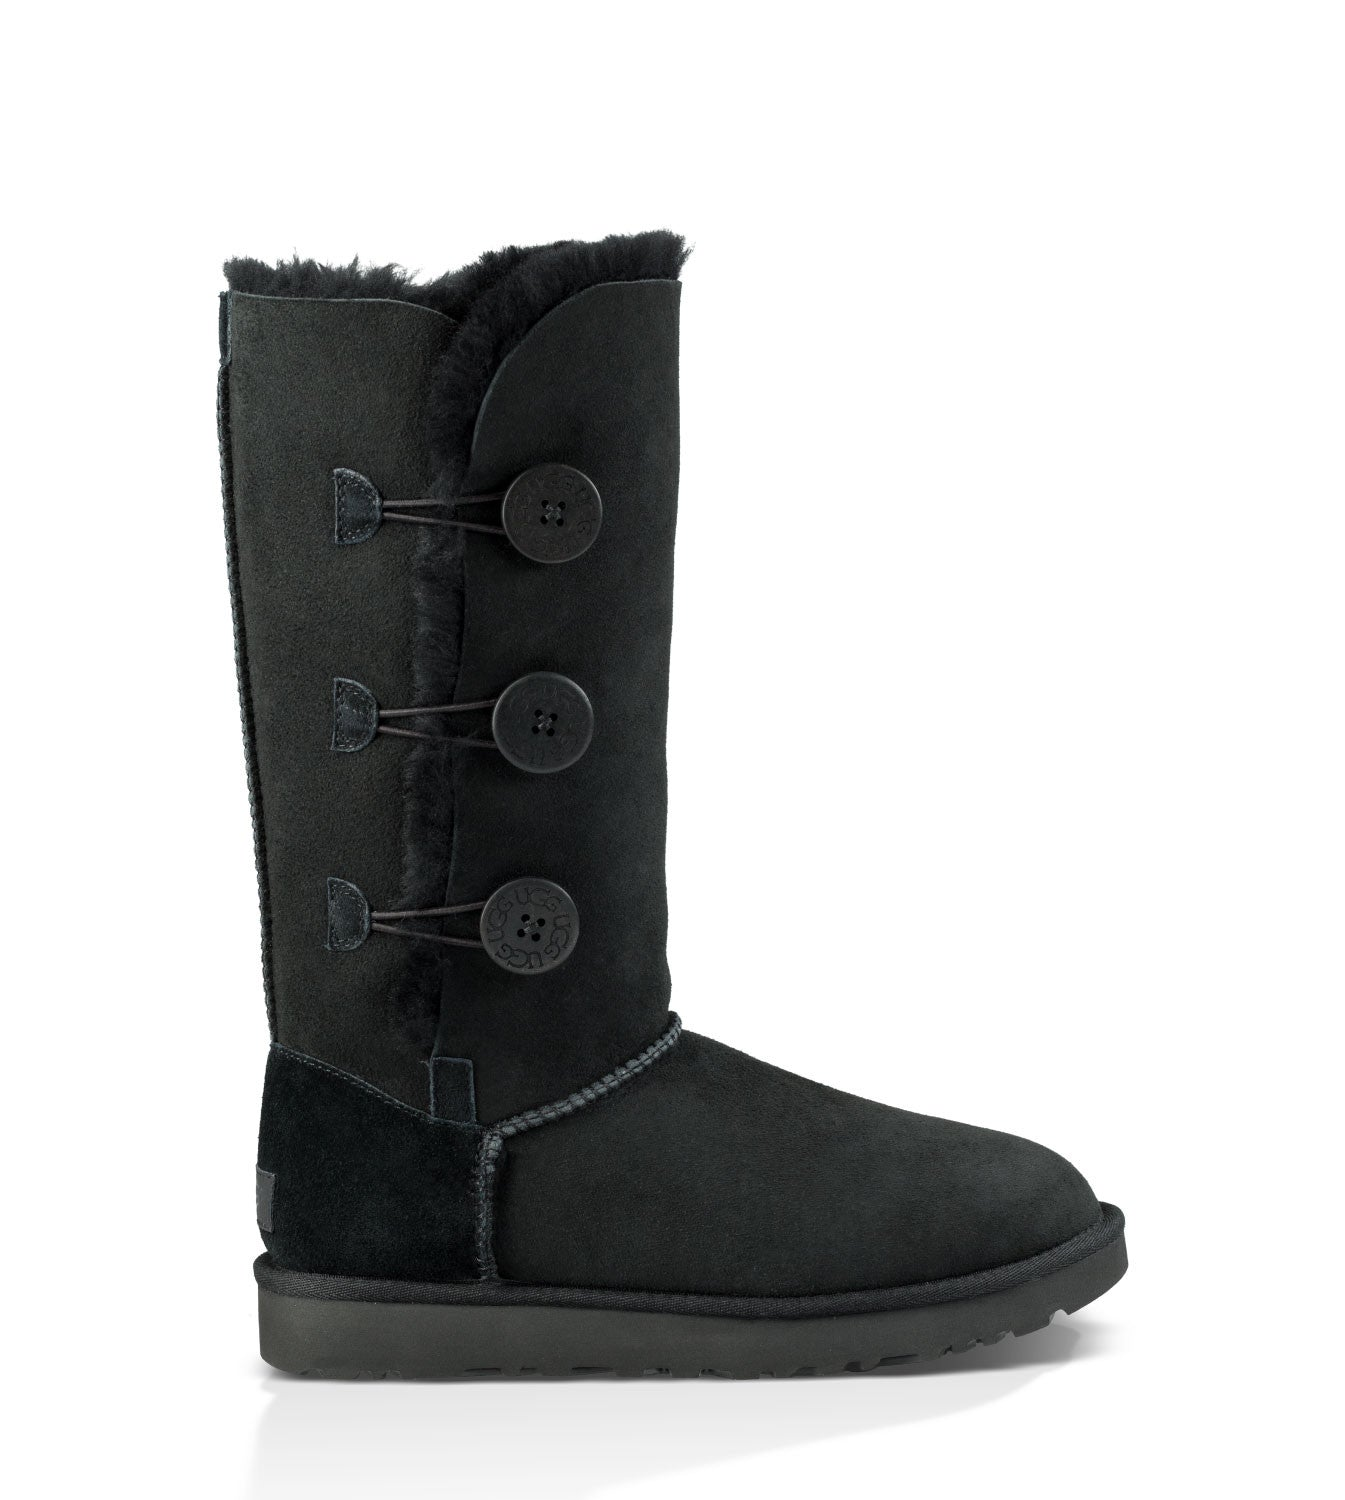 UGG Australia Women's Bailey Button Triplet II in Black